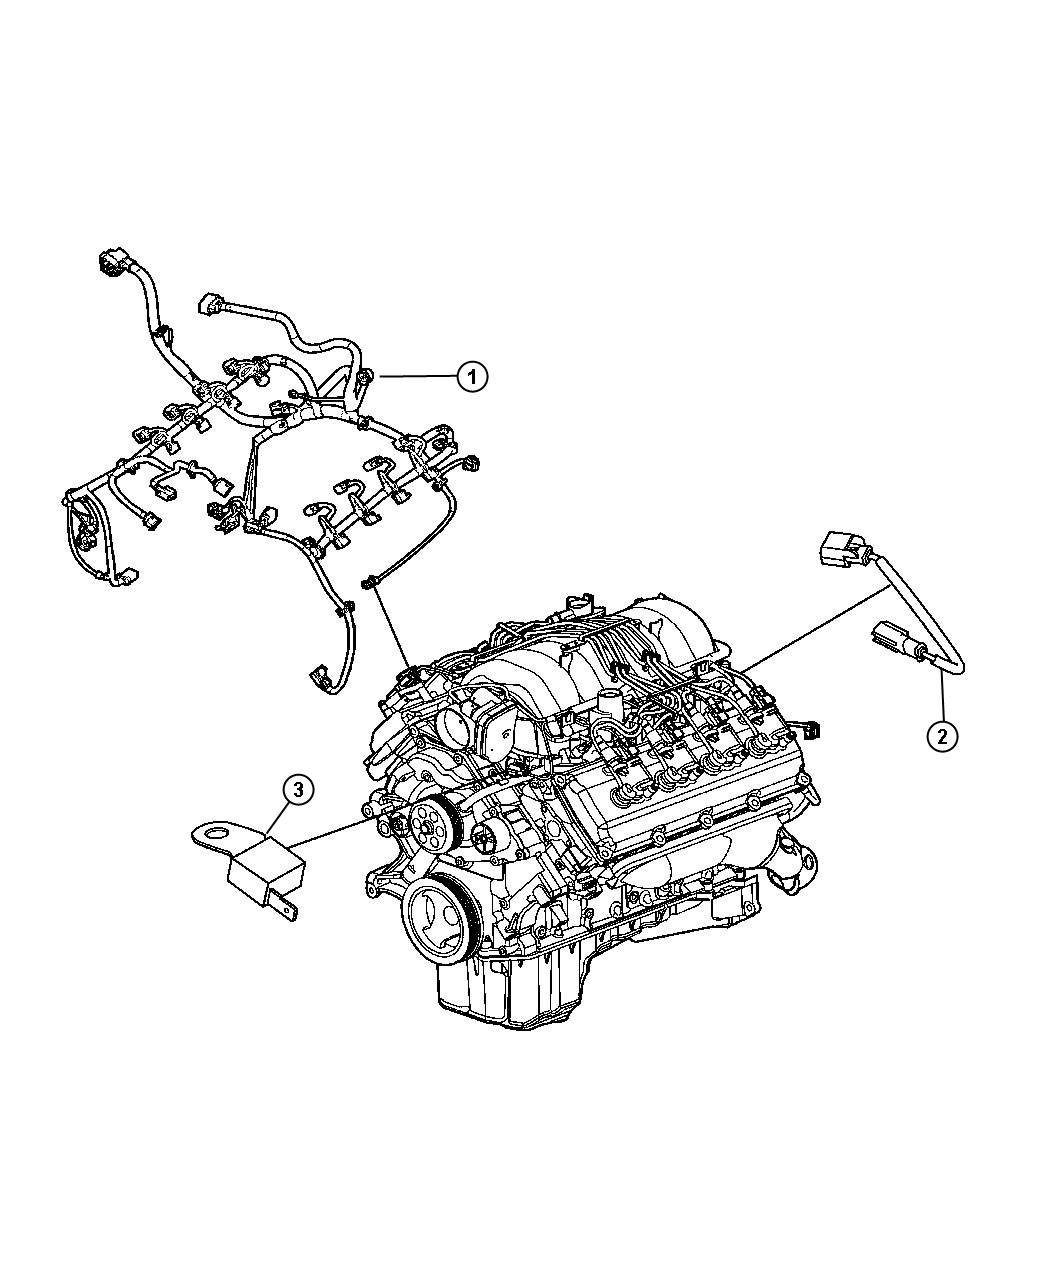 Hemi Engine Wiring, Hemi, Get Free Image About Wiring Diagram